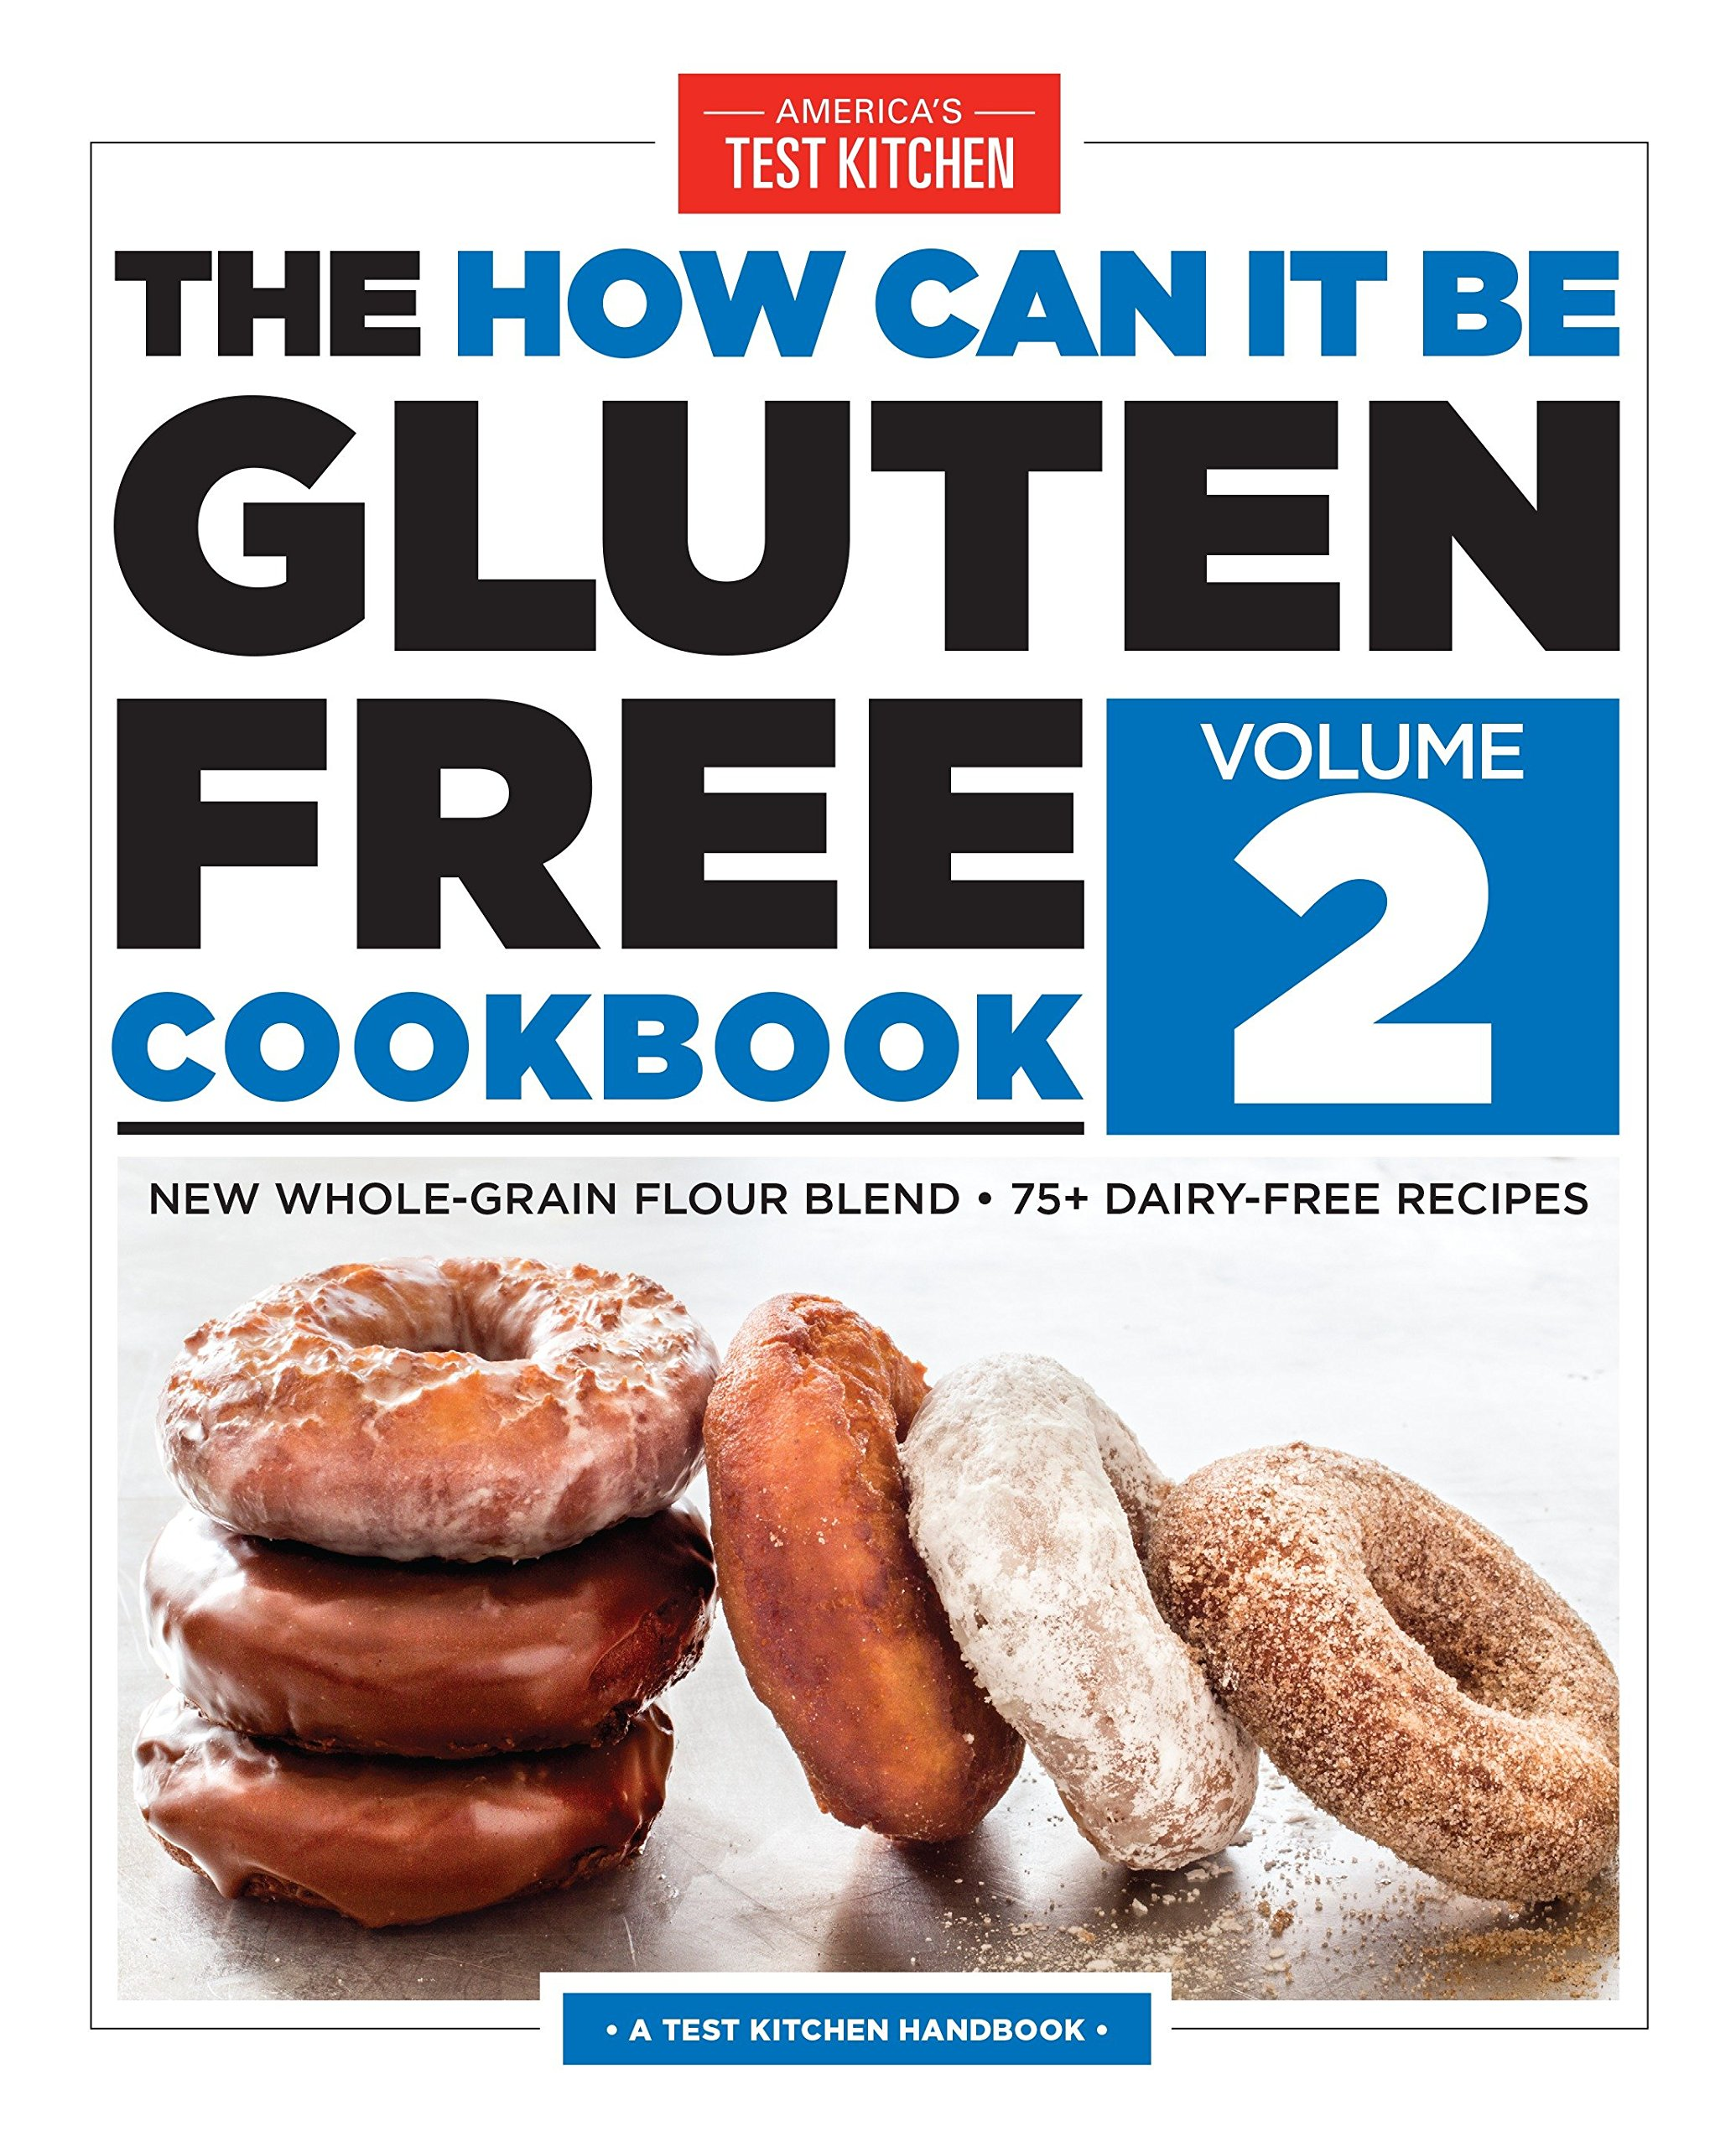 The How Can It Be Gluten Free Cookbook Volume 2: New Whole-Grain Flour Blend, 75+ Dairy-Free Recipes